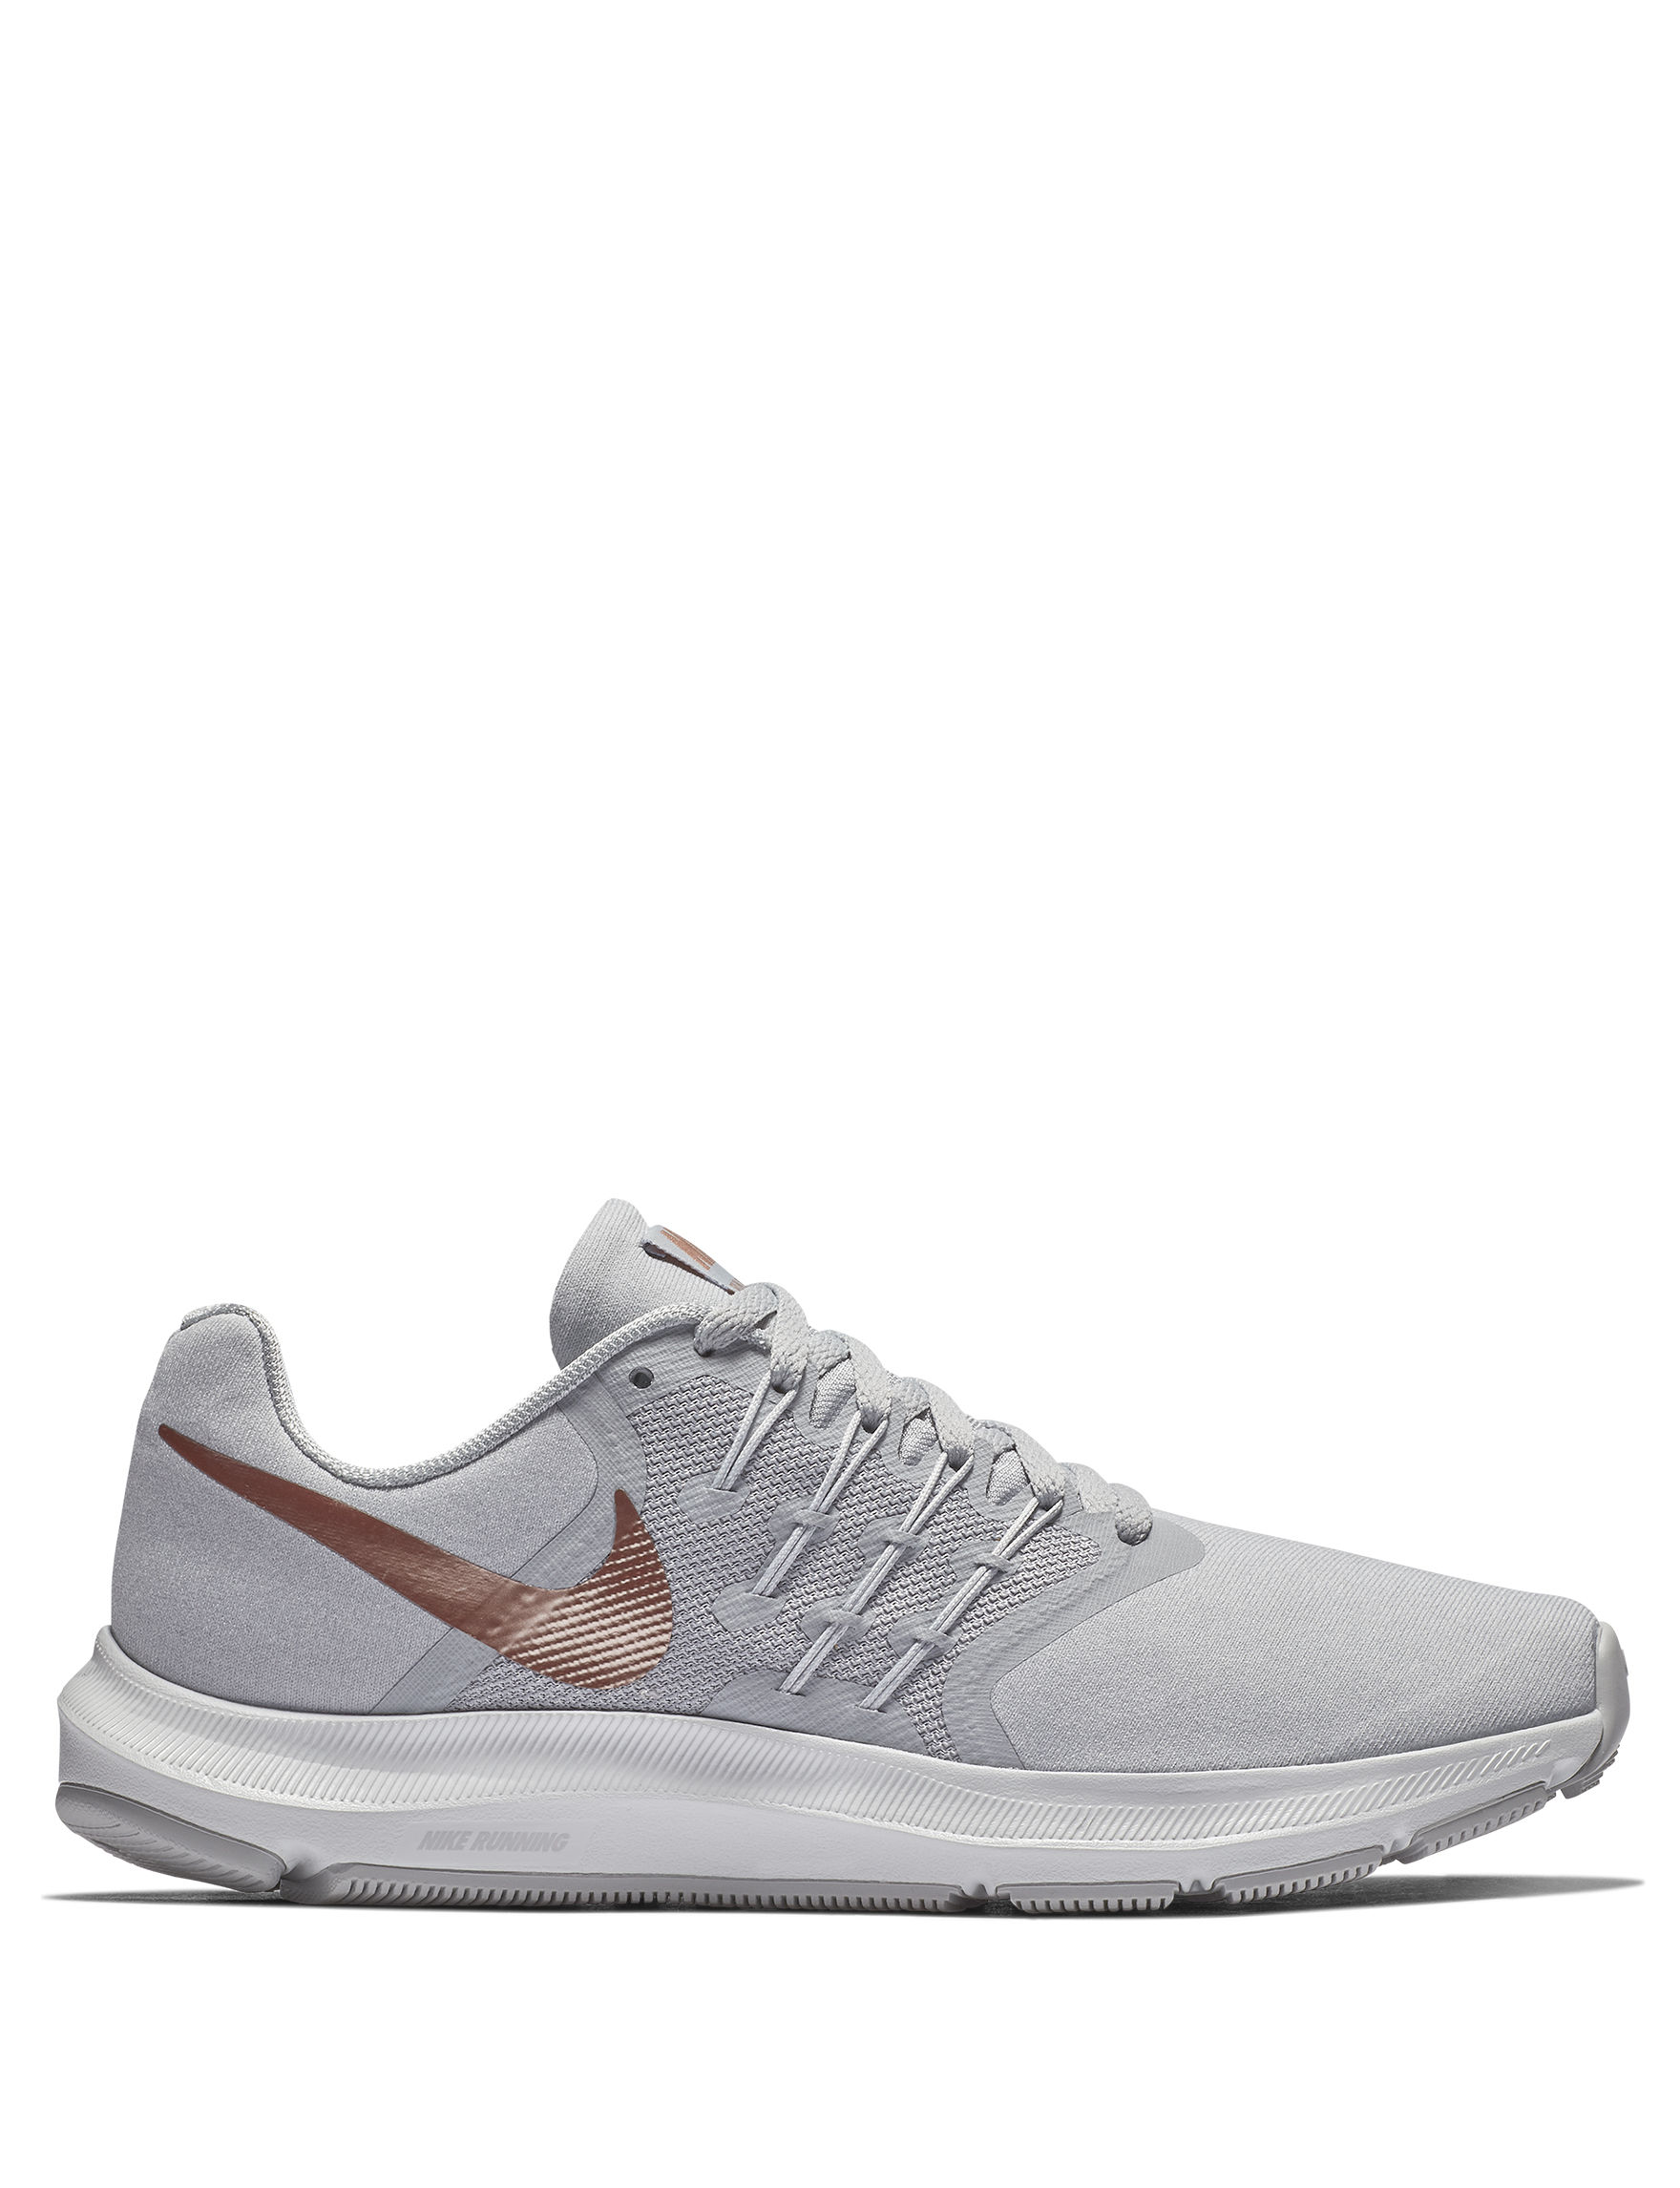 Nike Gold / Grey Comfort Shoes